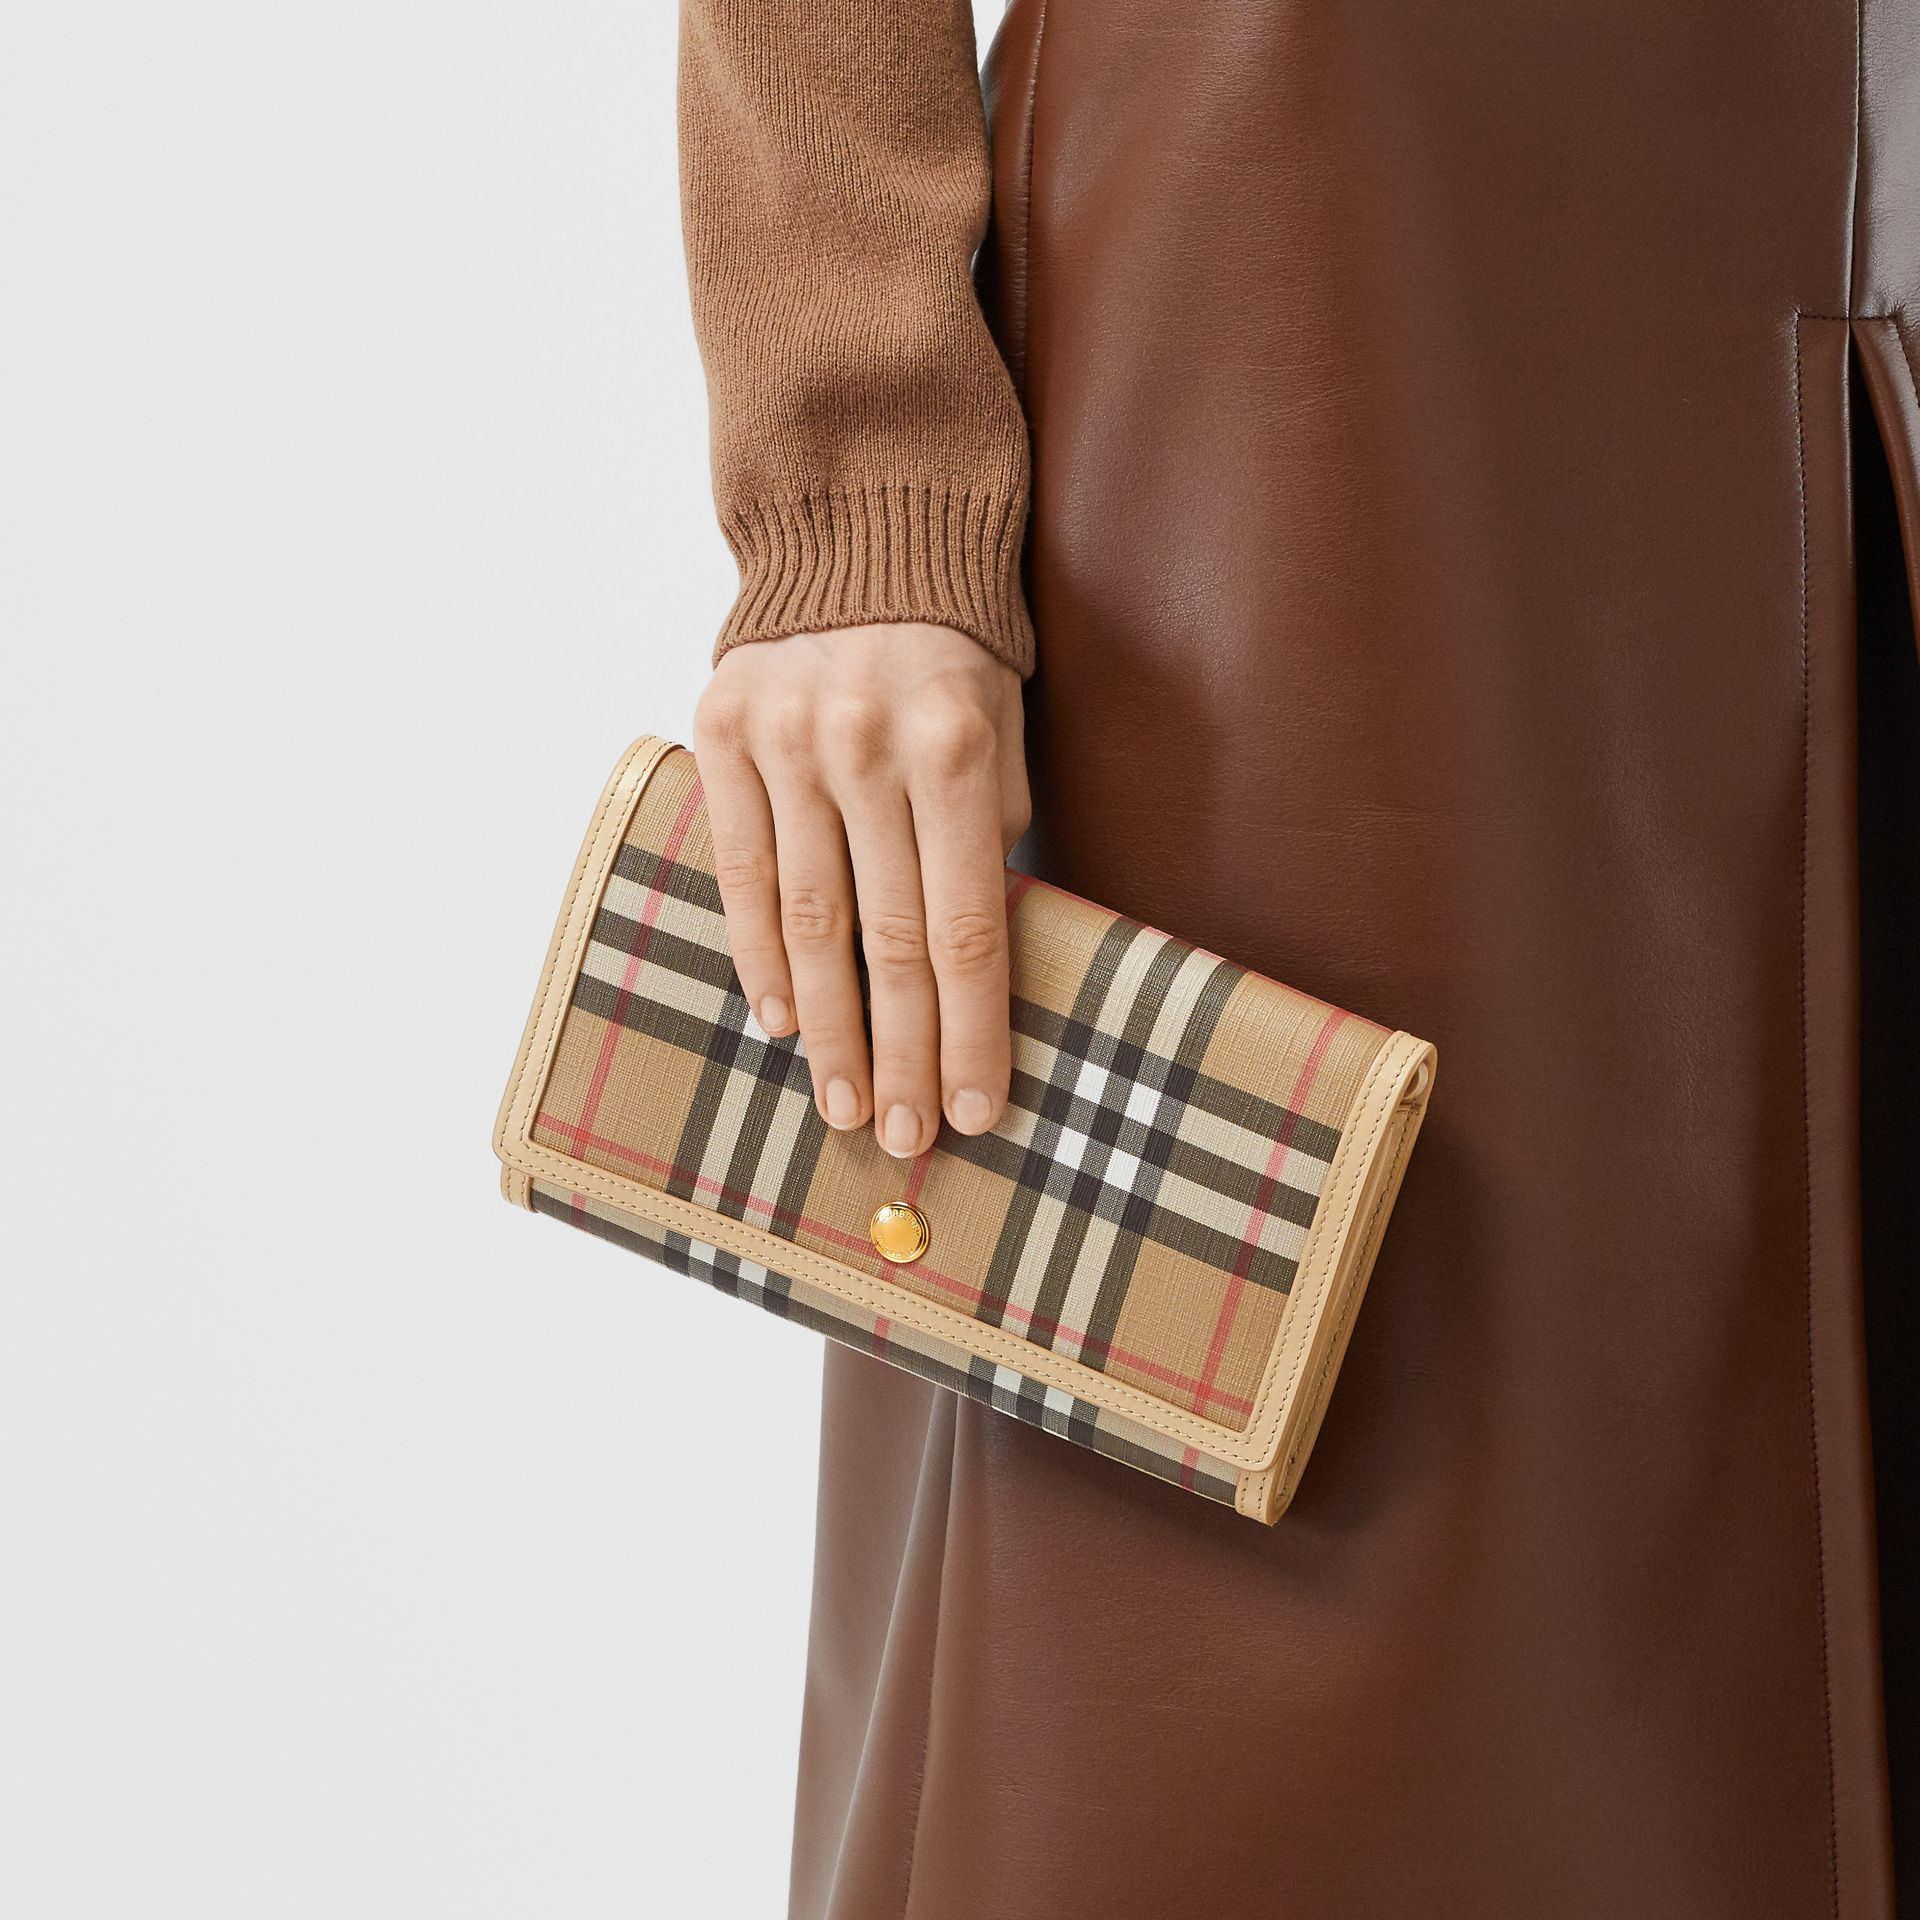 Vintage Check E-canvas Wallet with Detachable Strap in Beige - Women | Burberry United Kingdom - gallery image 2